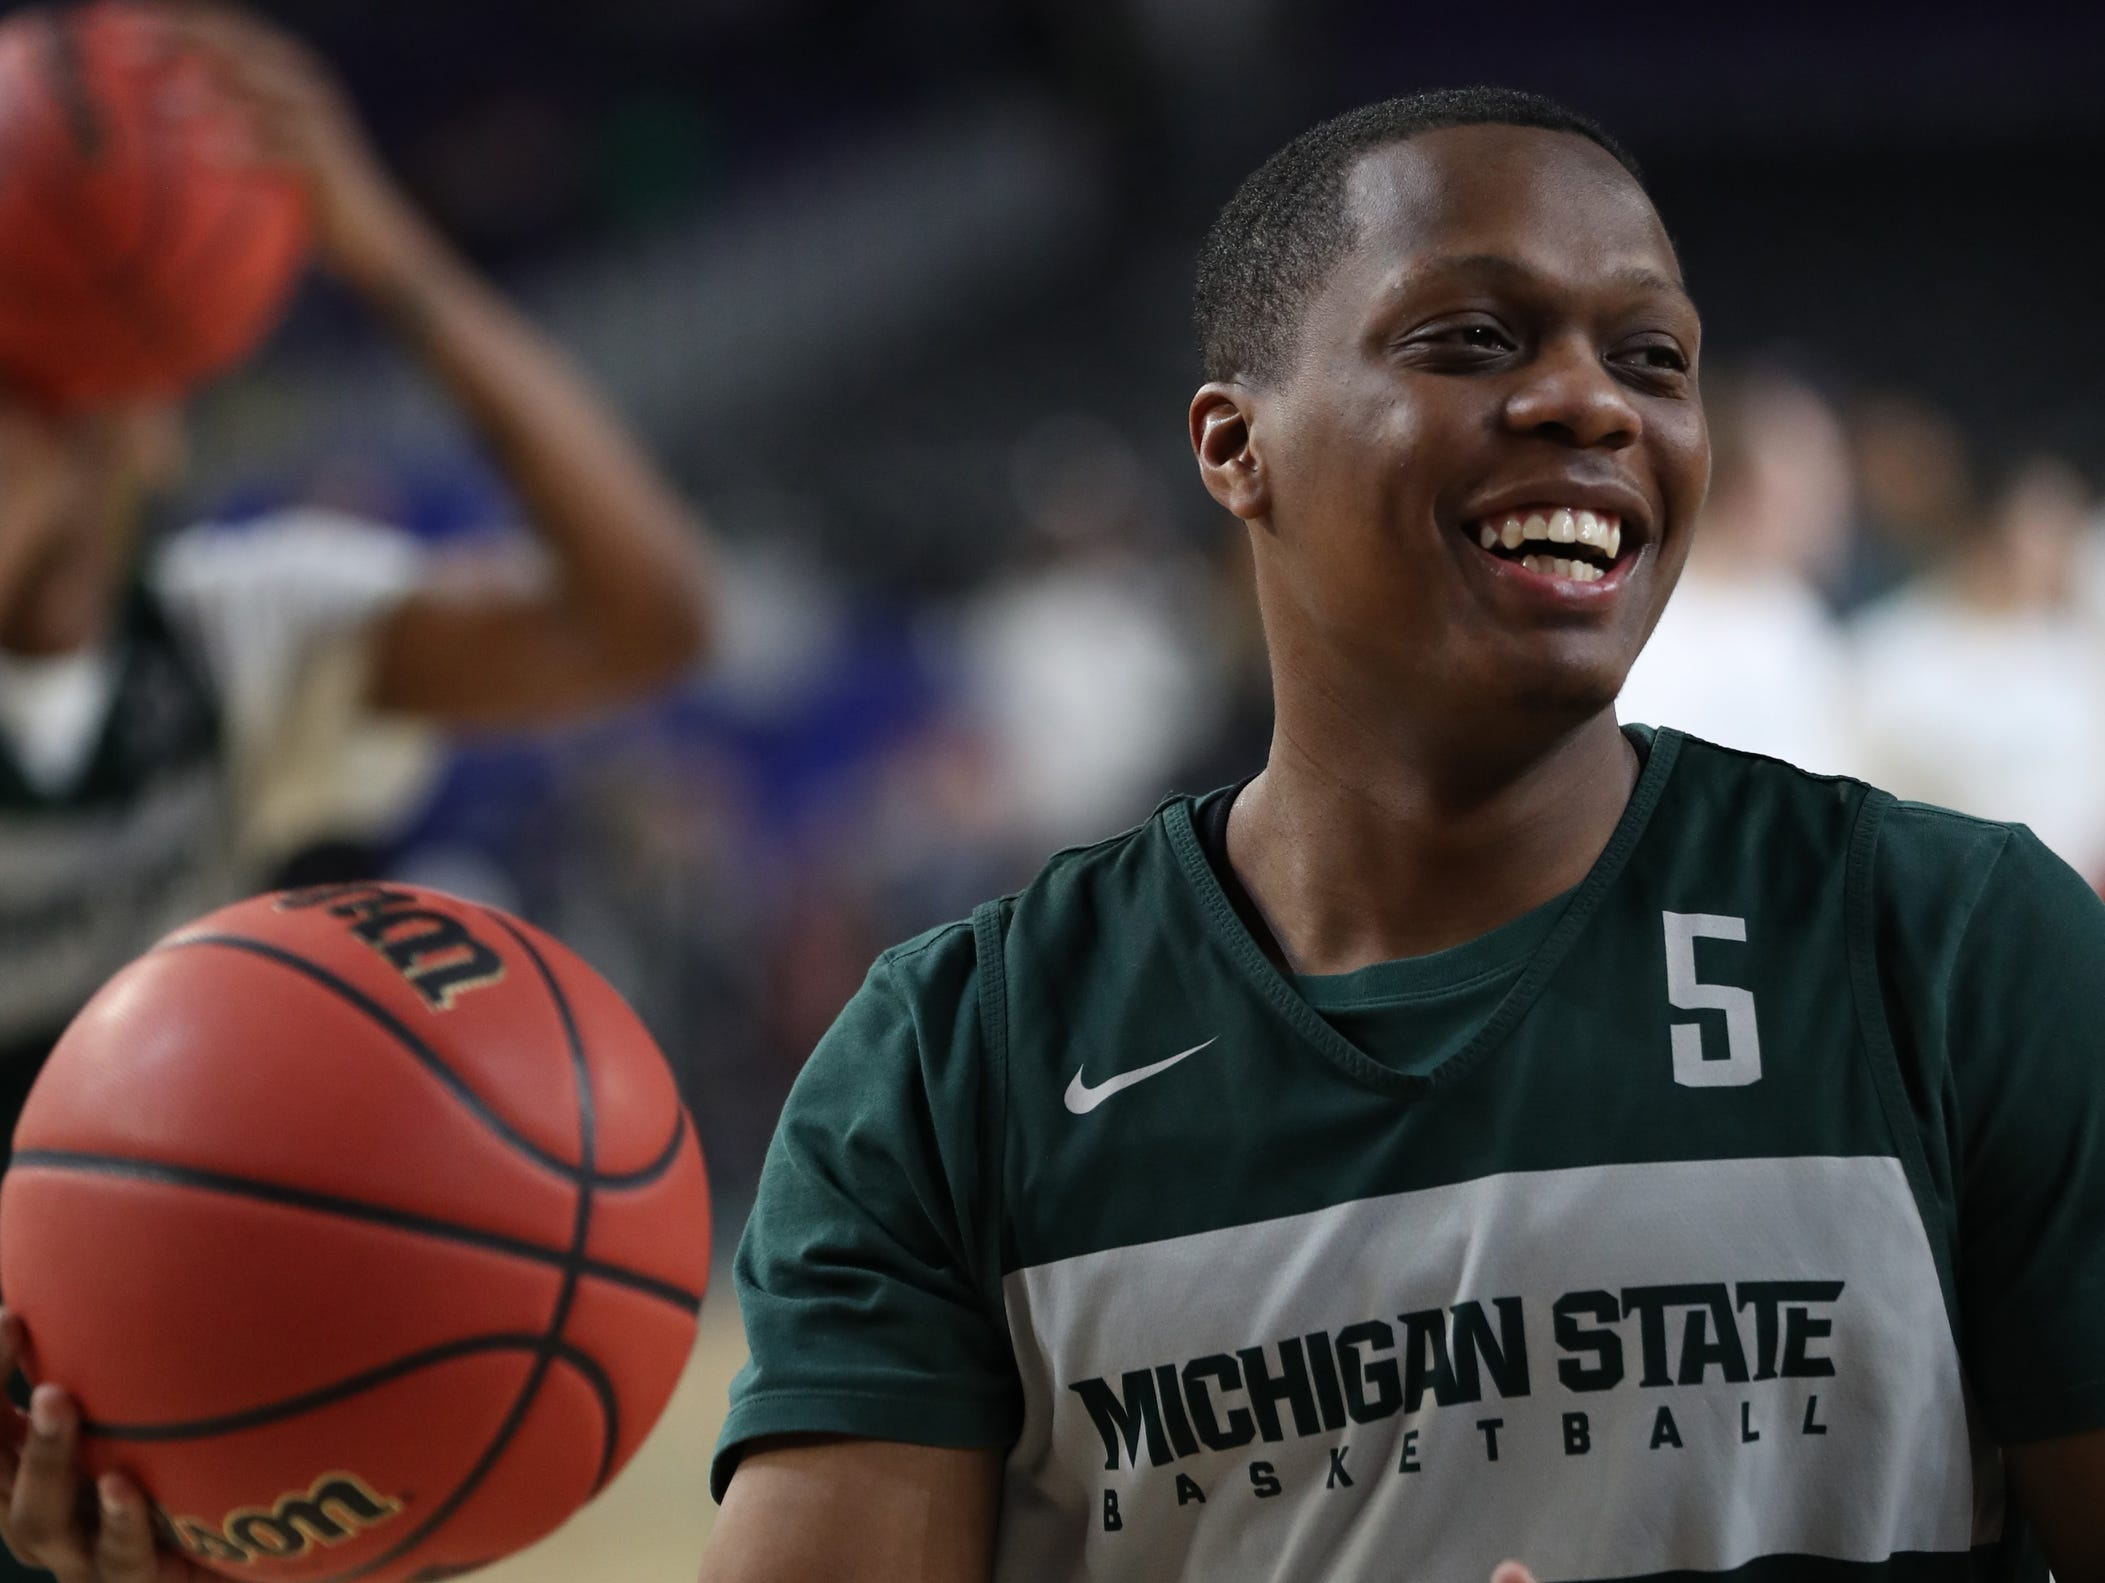 Michigan State's guard Cassius Winston goes through drills during practice for their NCAA semifinal game against Texas Tech Friday, April 5, 2019 at U.S. Bank Stadium in Minneapolis, Minn.